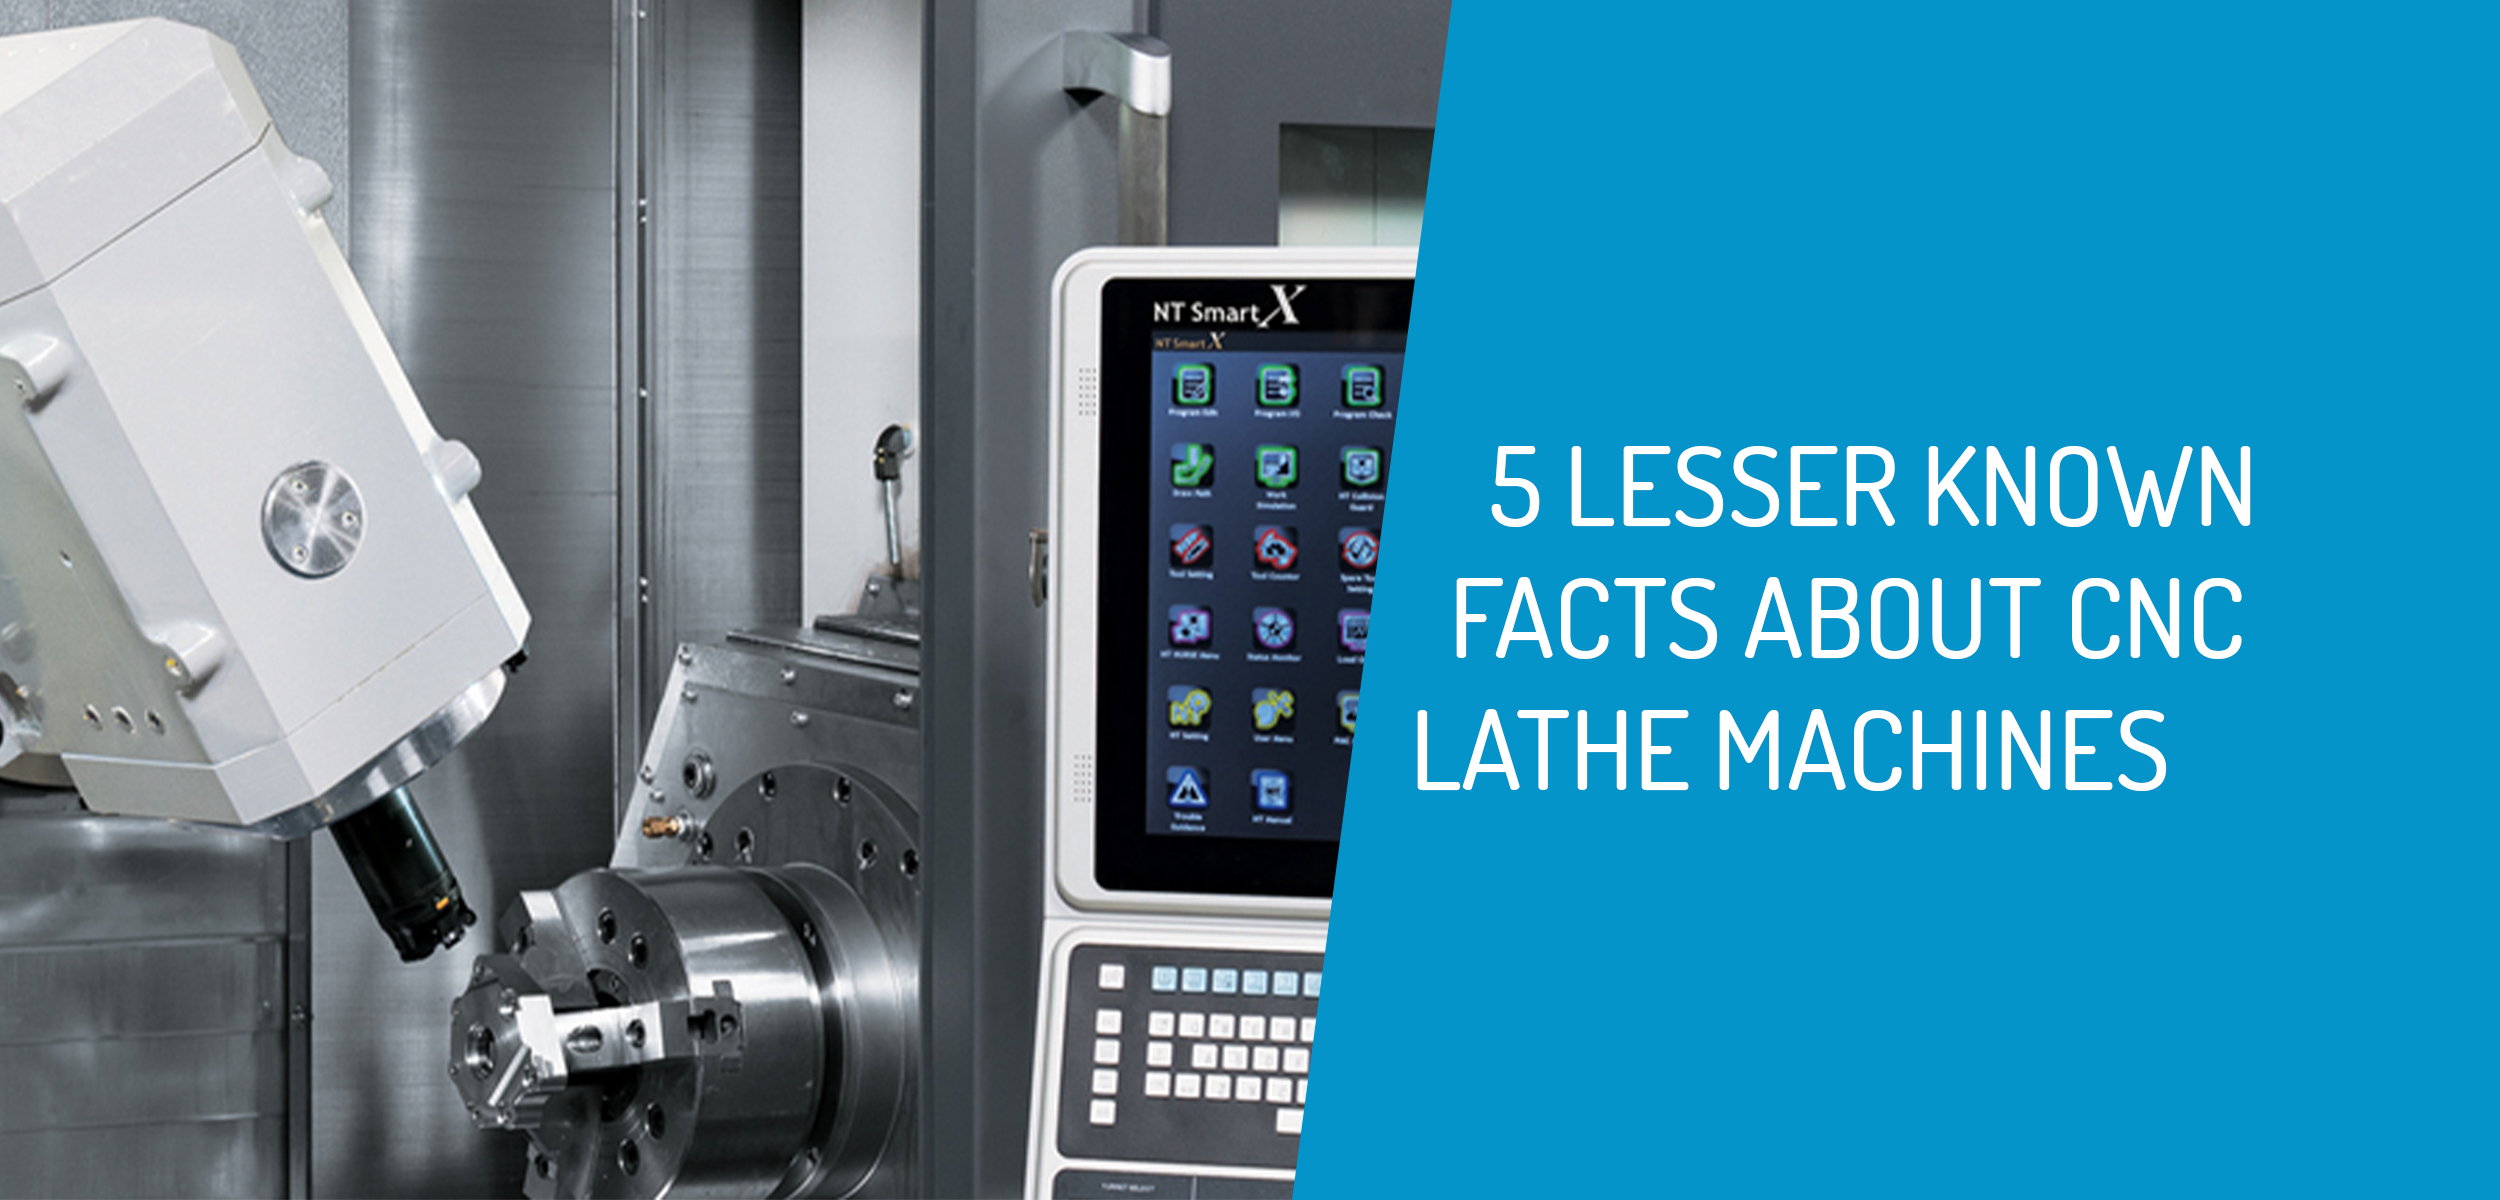 5 lesser known facts cnc lathes